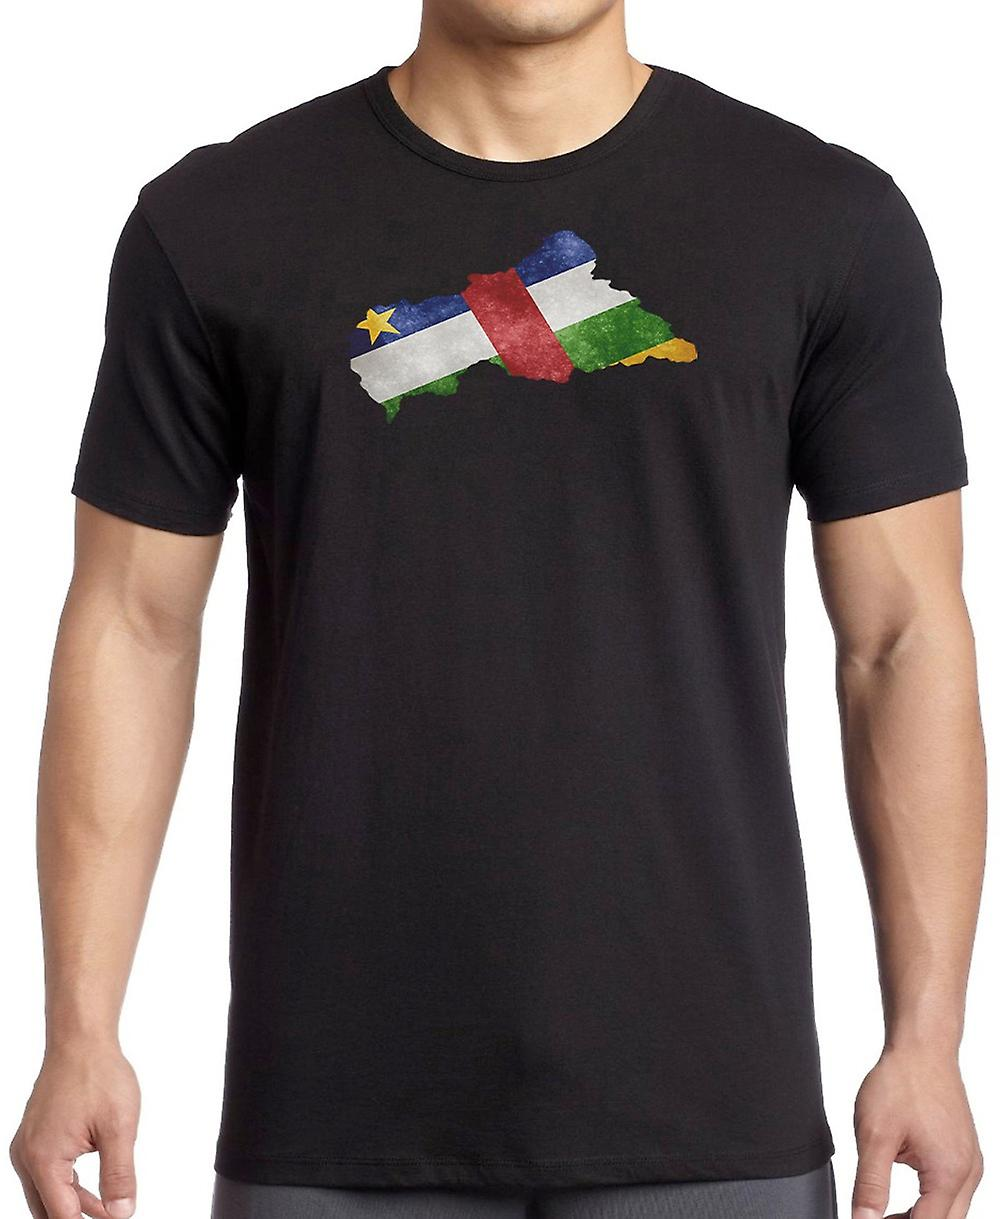 Central Afrika Republik Flagge Karte Kinder T Shirt